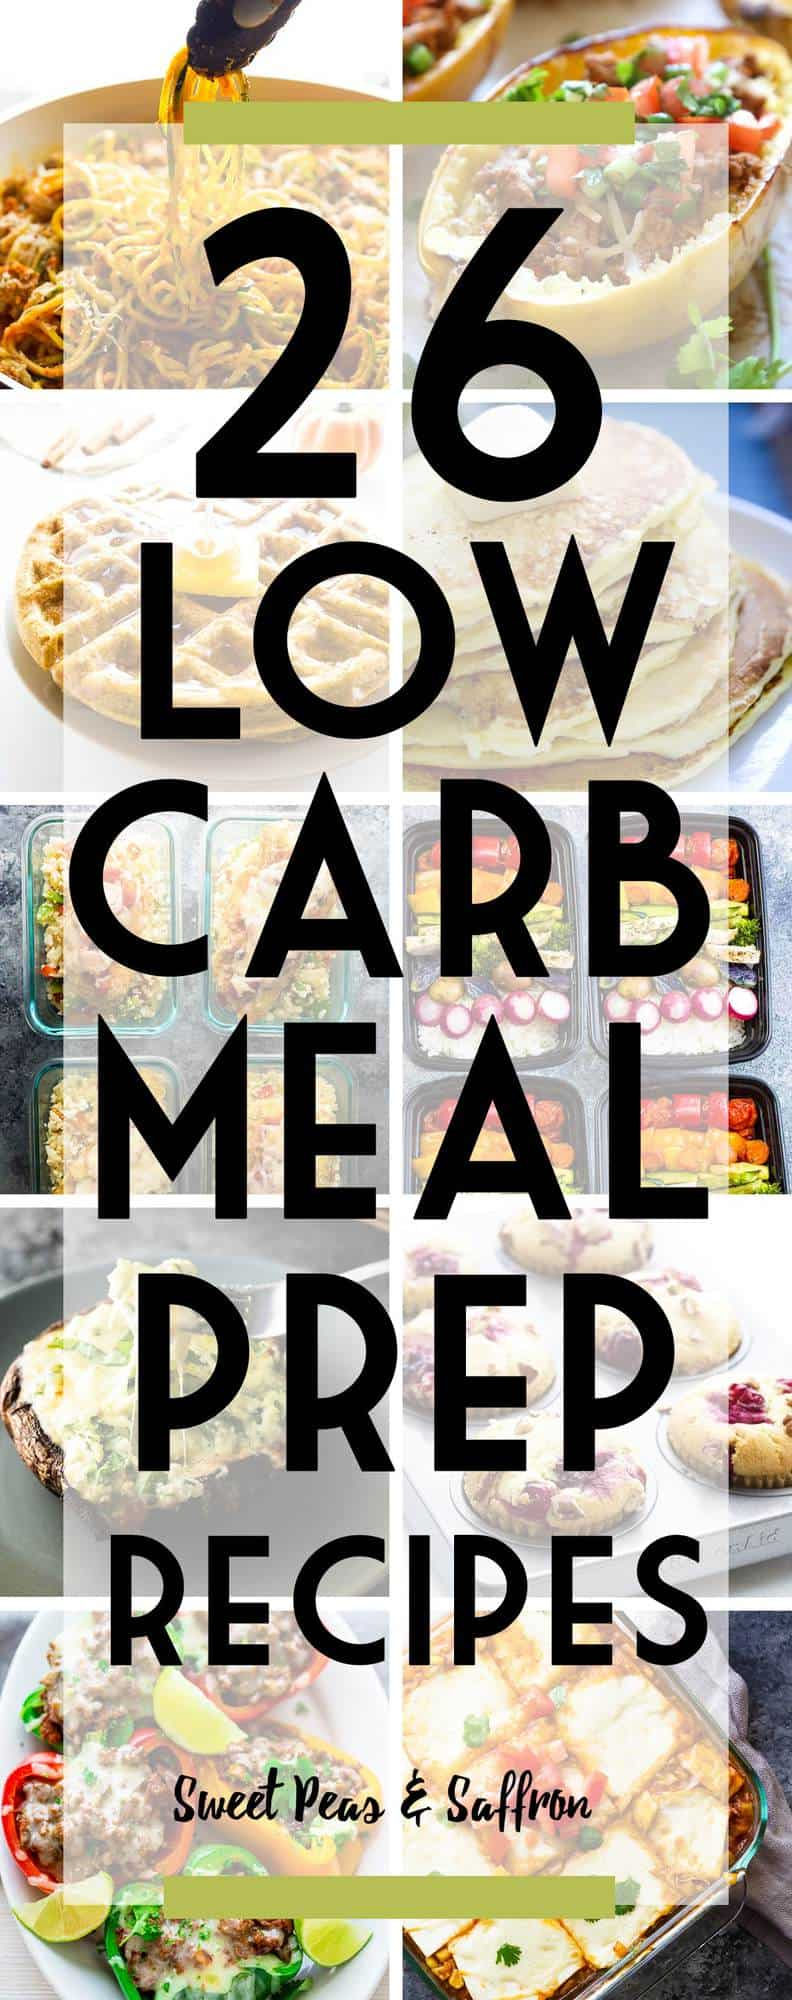 These low carb meal prep recipes have got you covered for breakfast, lunch, dinner and snacks! Carb grams listed so you don't have to hunt them down yourself.